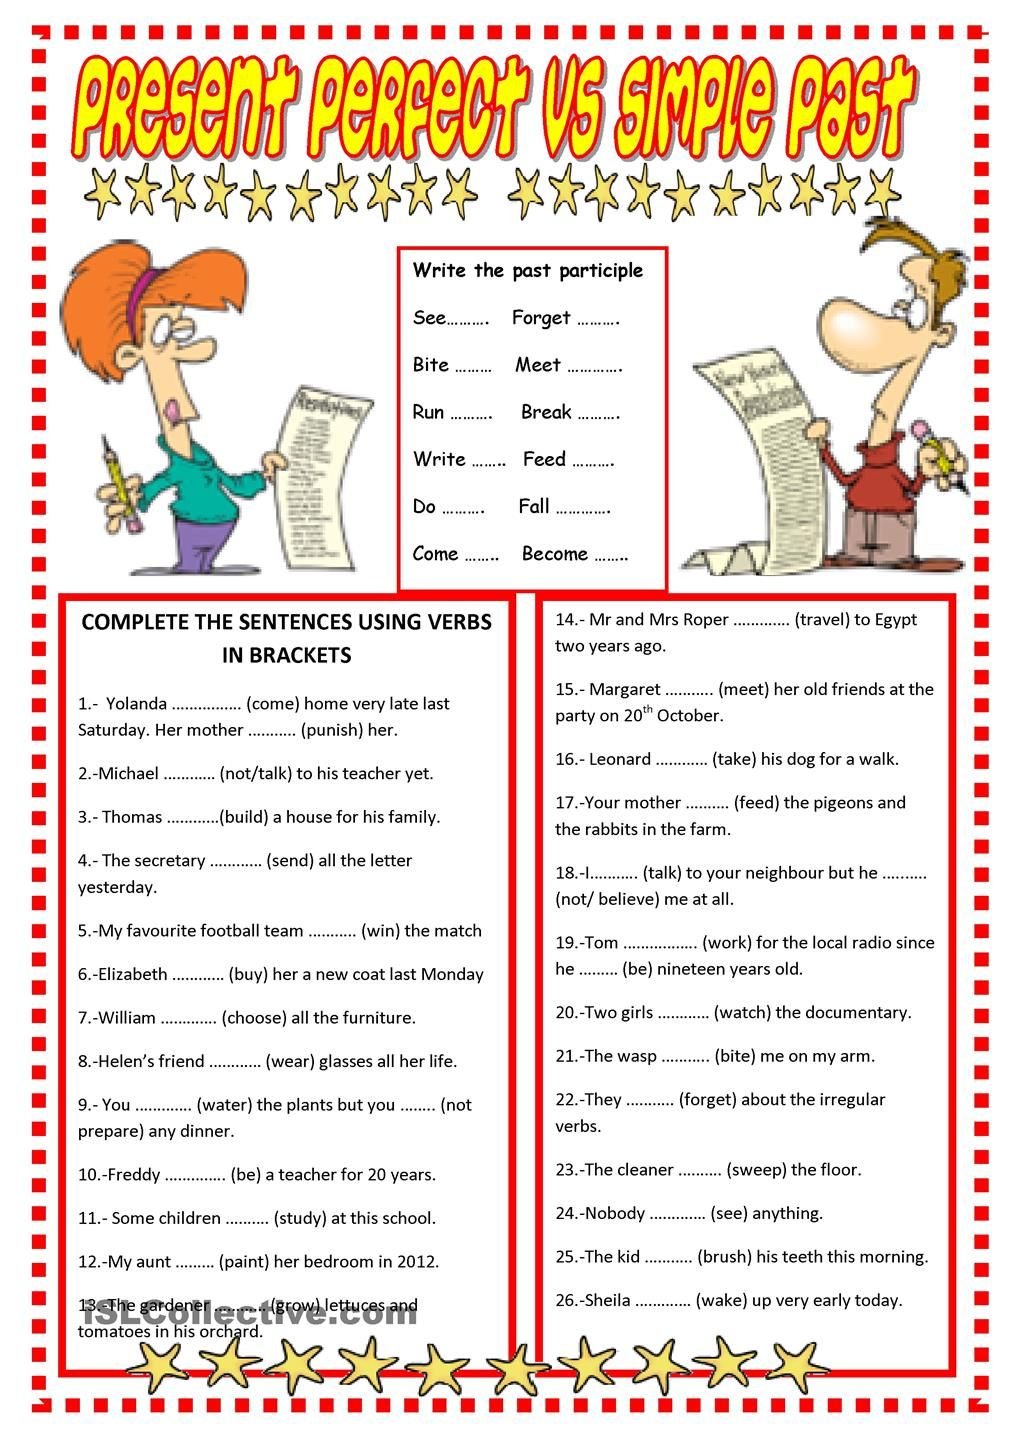 PRESENT PERFECT vs SIMPLE PAST | Engels | Pinterest | Englisch ...